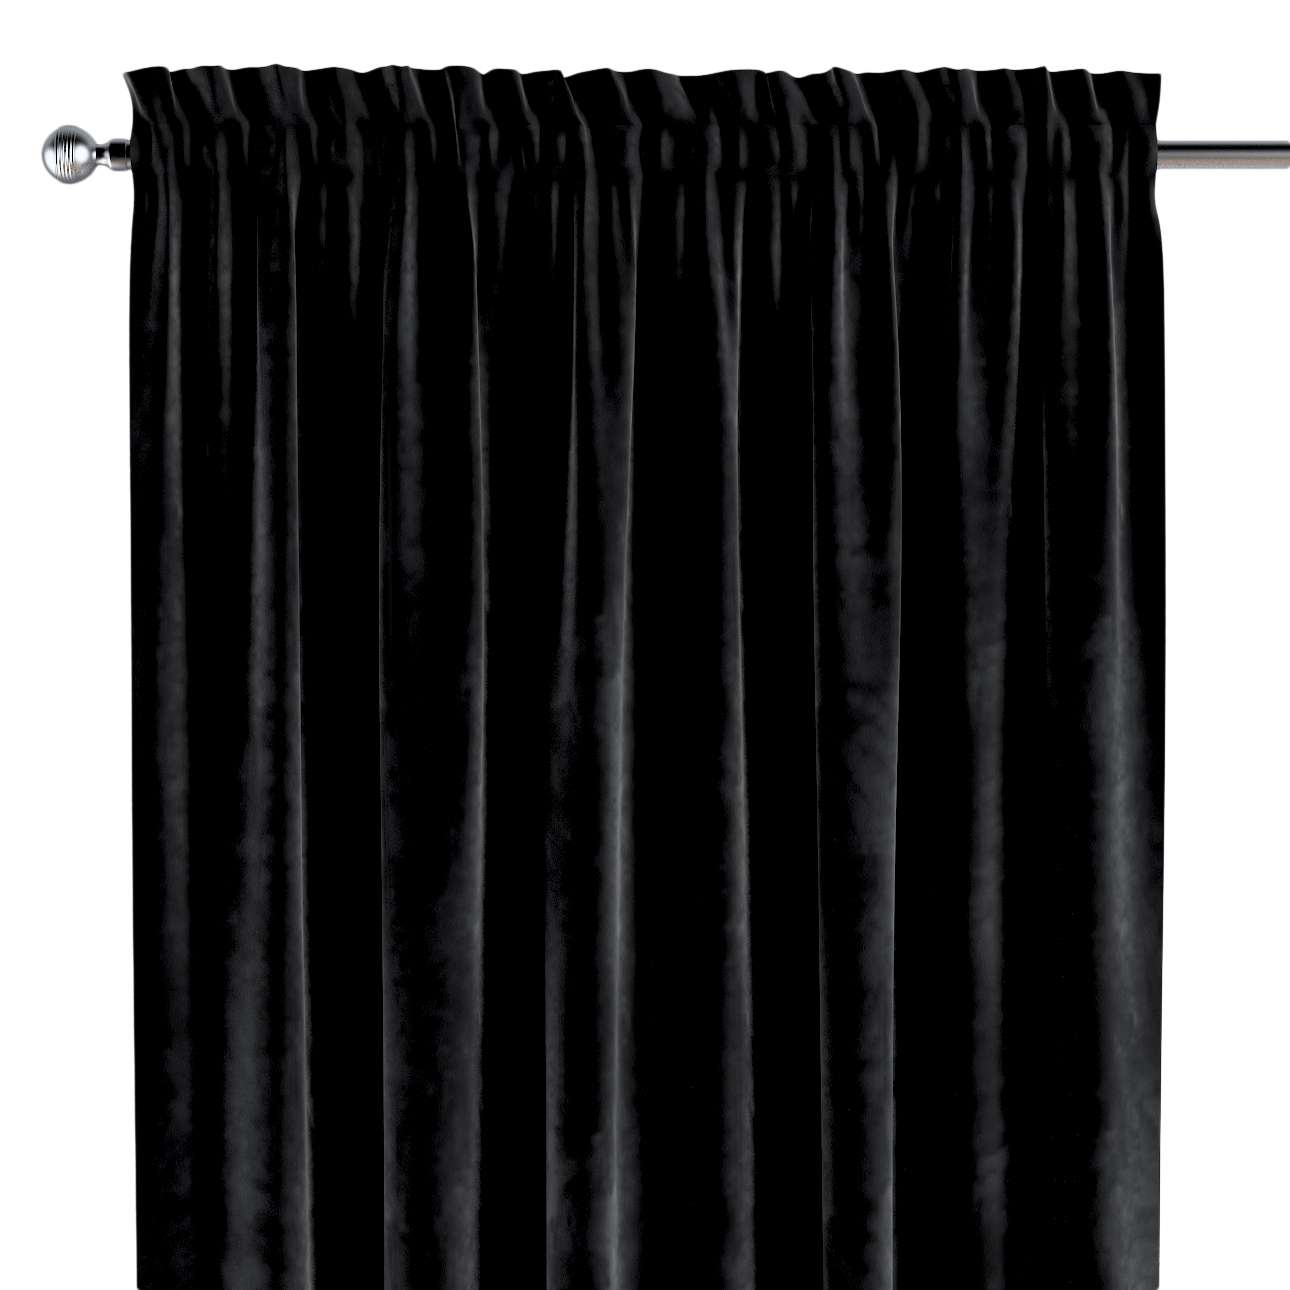 Slot and frill curtains in collection Velvet, fabric: 704-17